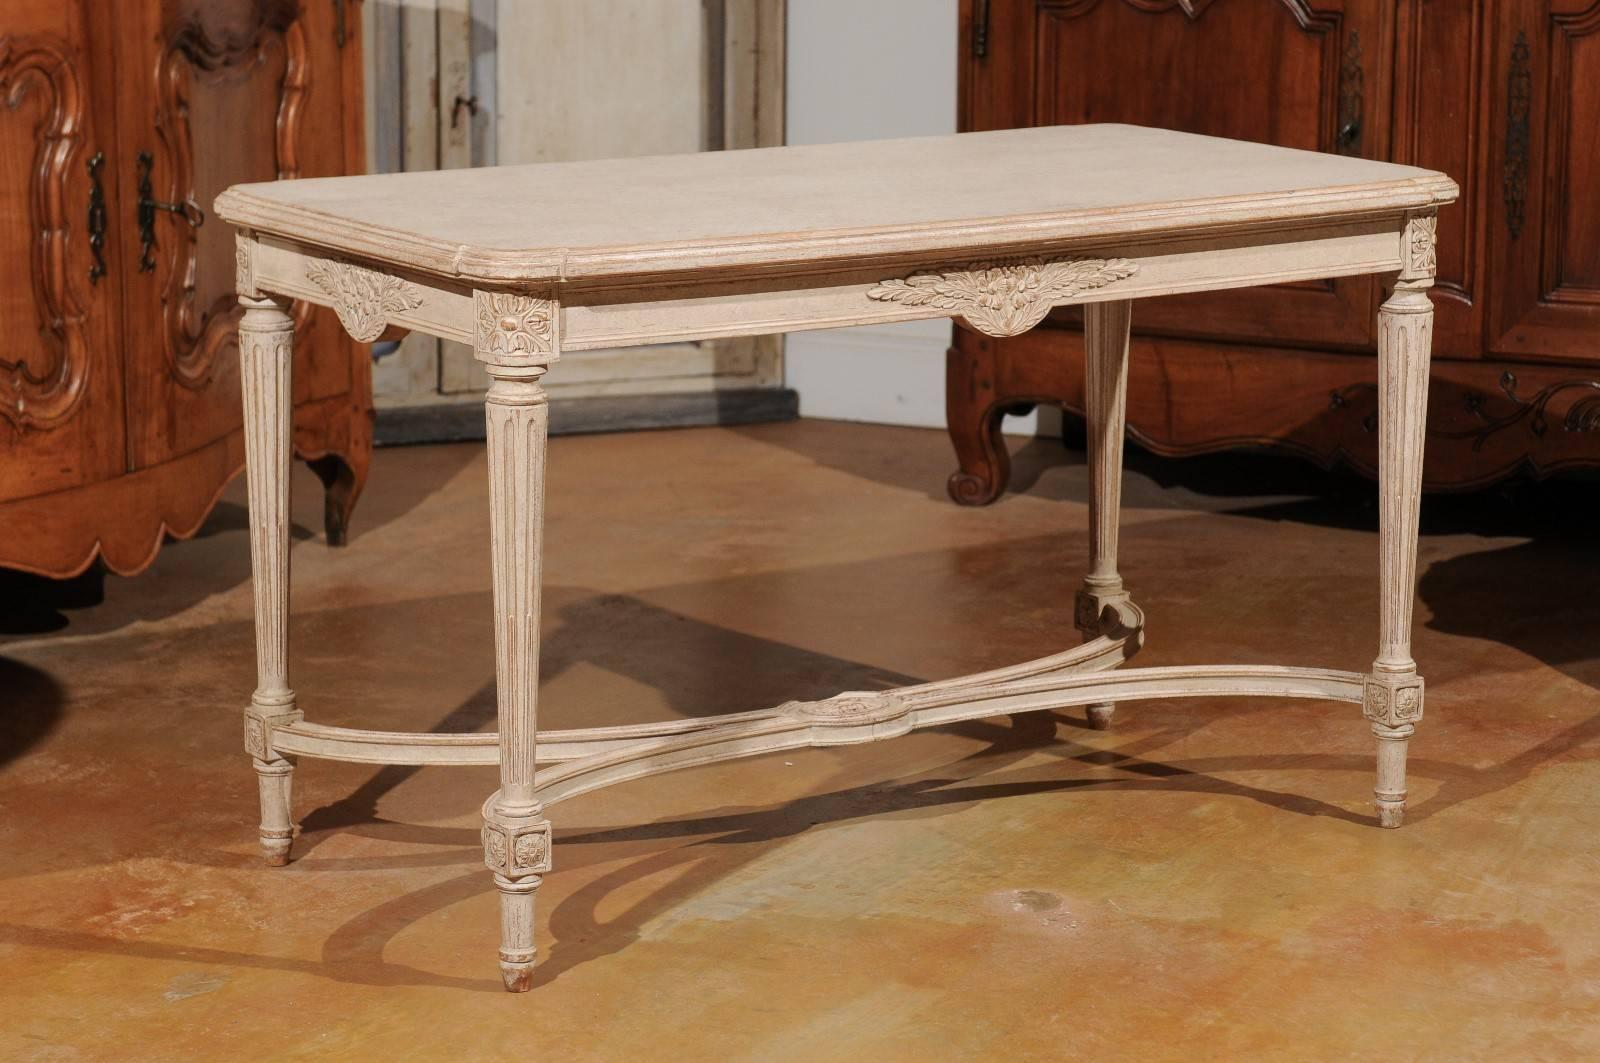 Ordinaire A Swedish Gustavian Style Painted Wood Coffee Table With Fluted Legs And  Cross Stretcher From The